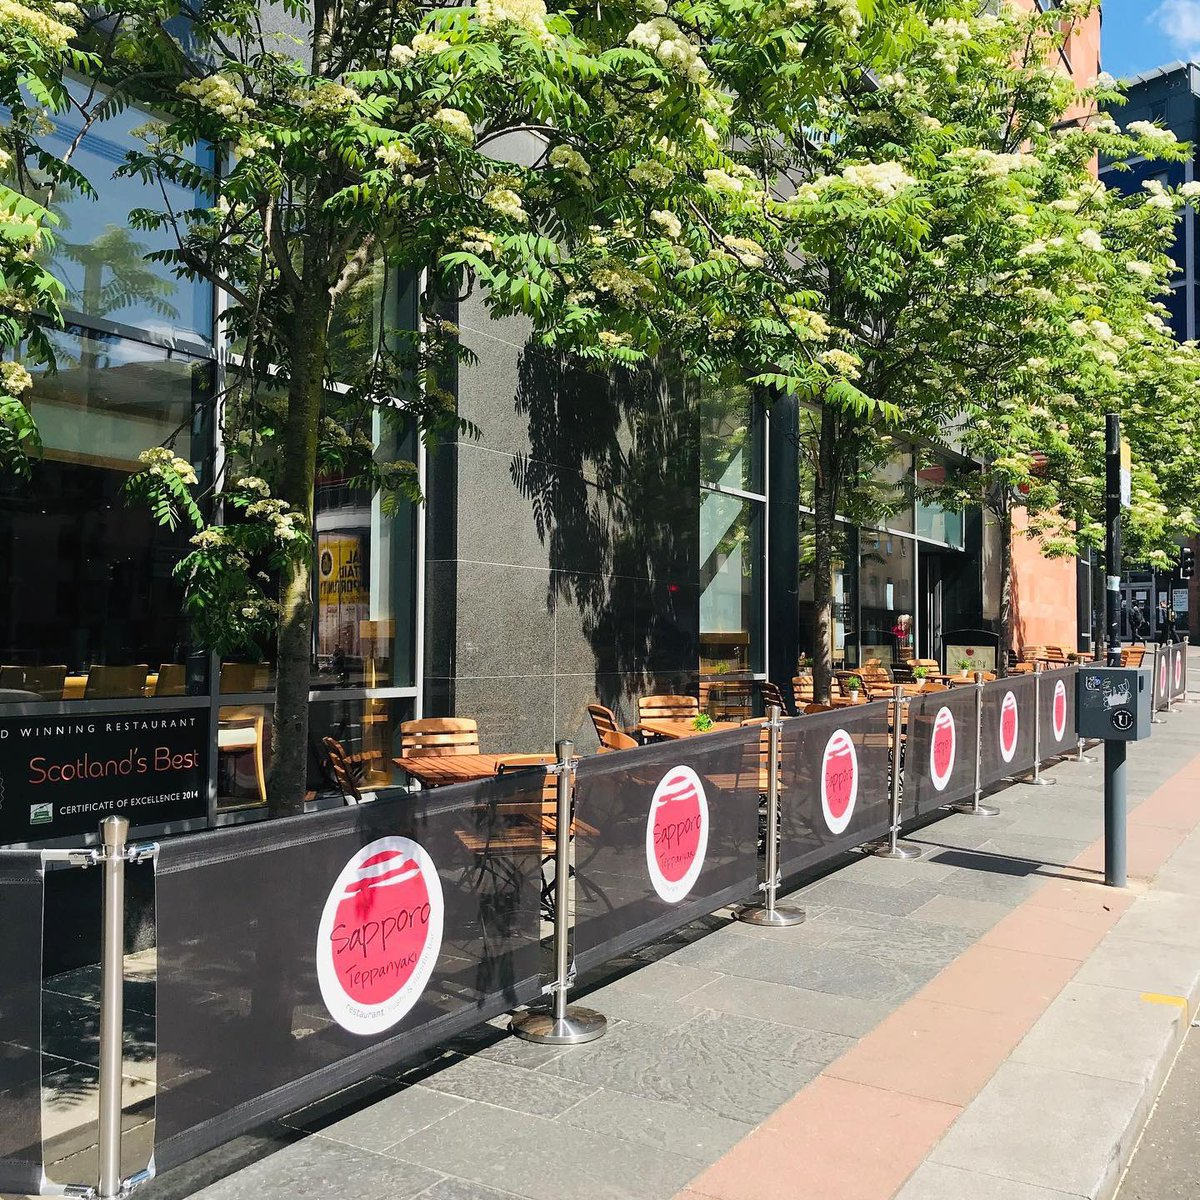 Now our guests can enjoy their drinks and nibbles outside on our new Terrace @sapporoglasgow #ingramstreet #japanese_food #cocktails #summer